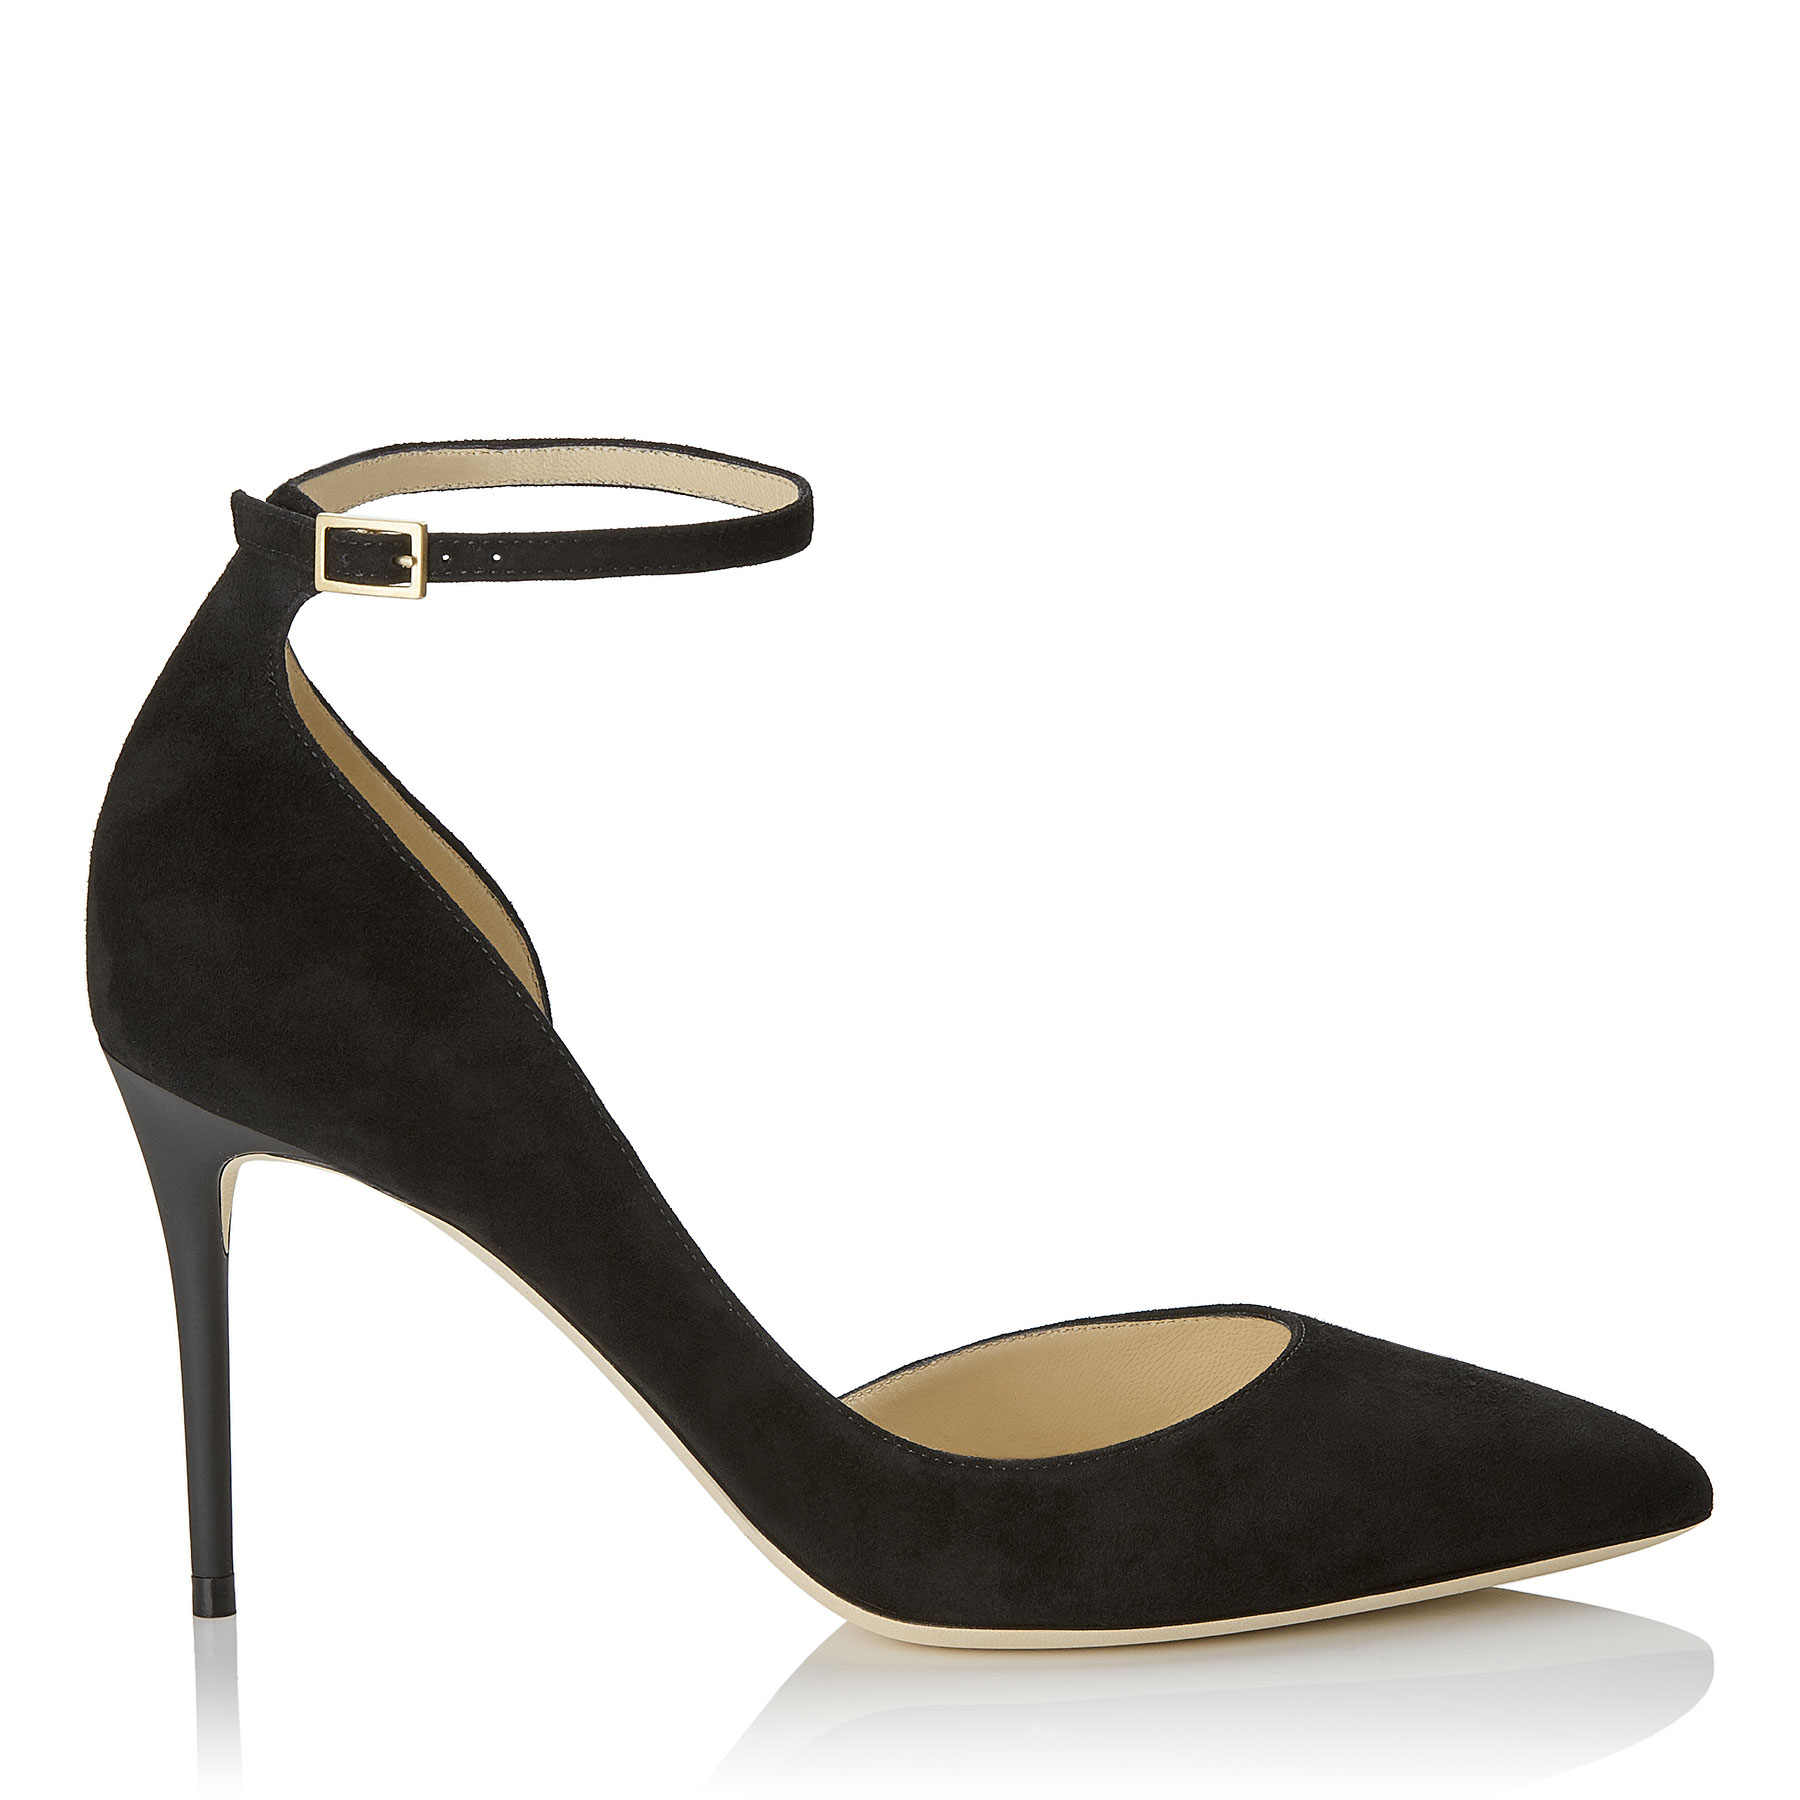 LUCY 85 Black Suede Pointy Toe Pumps by Jimmy Choo